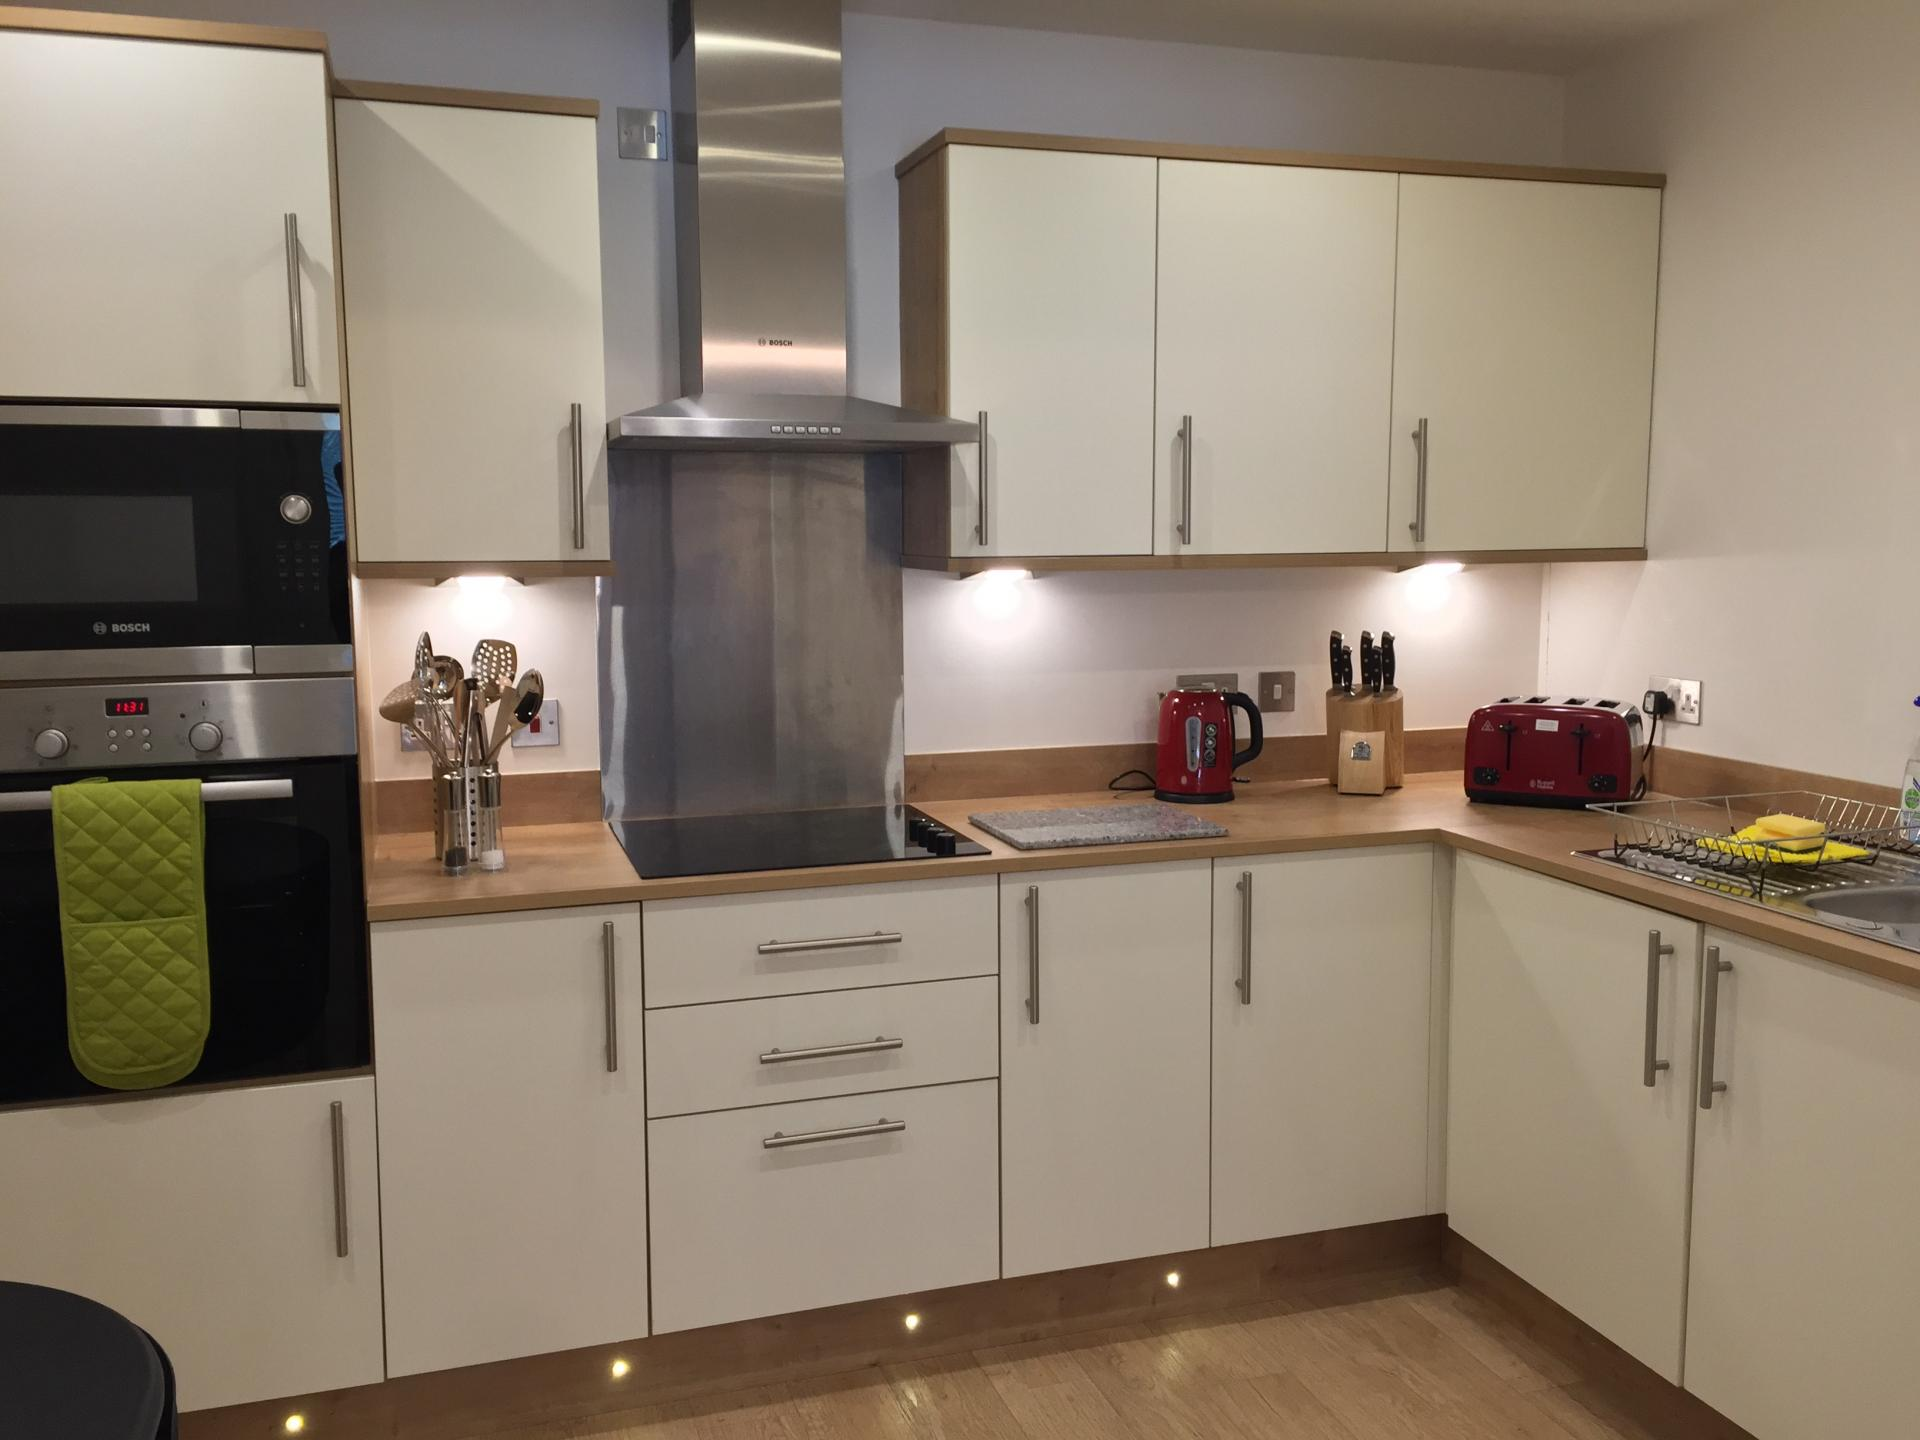 Kitchen at Hedgefield Apartments, Centre, Inverness